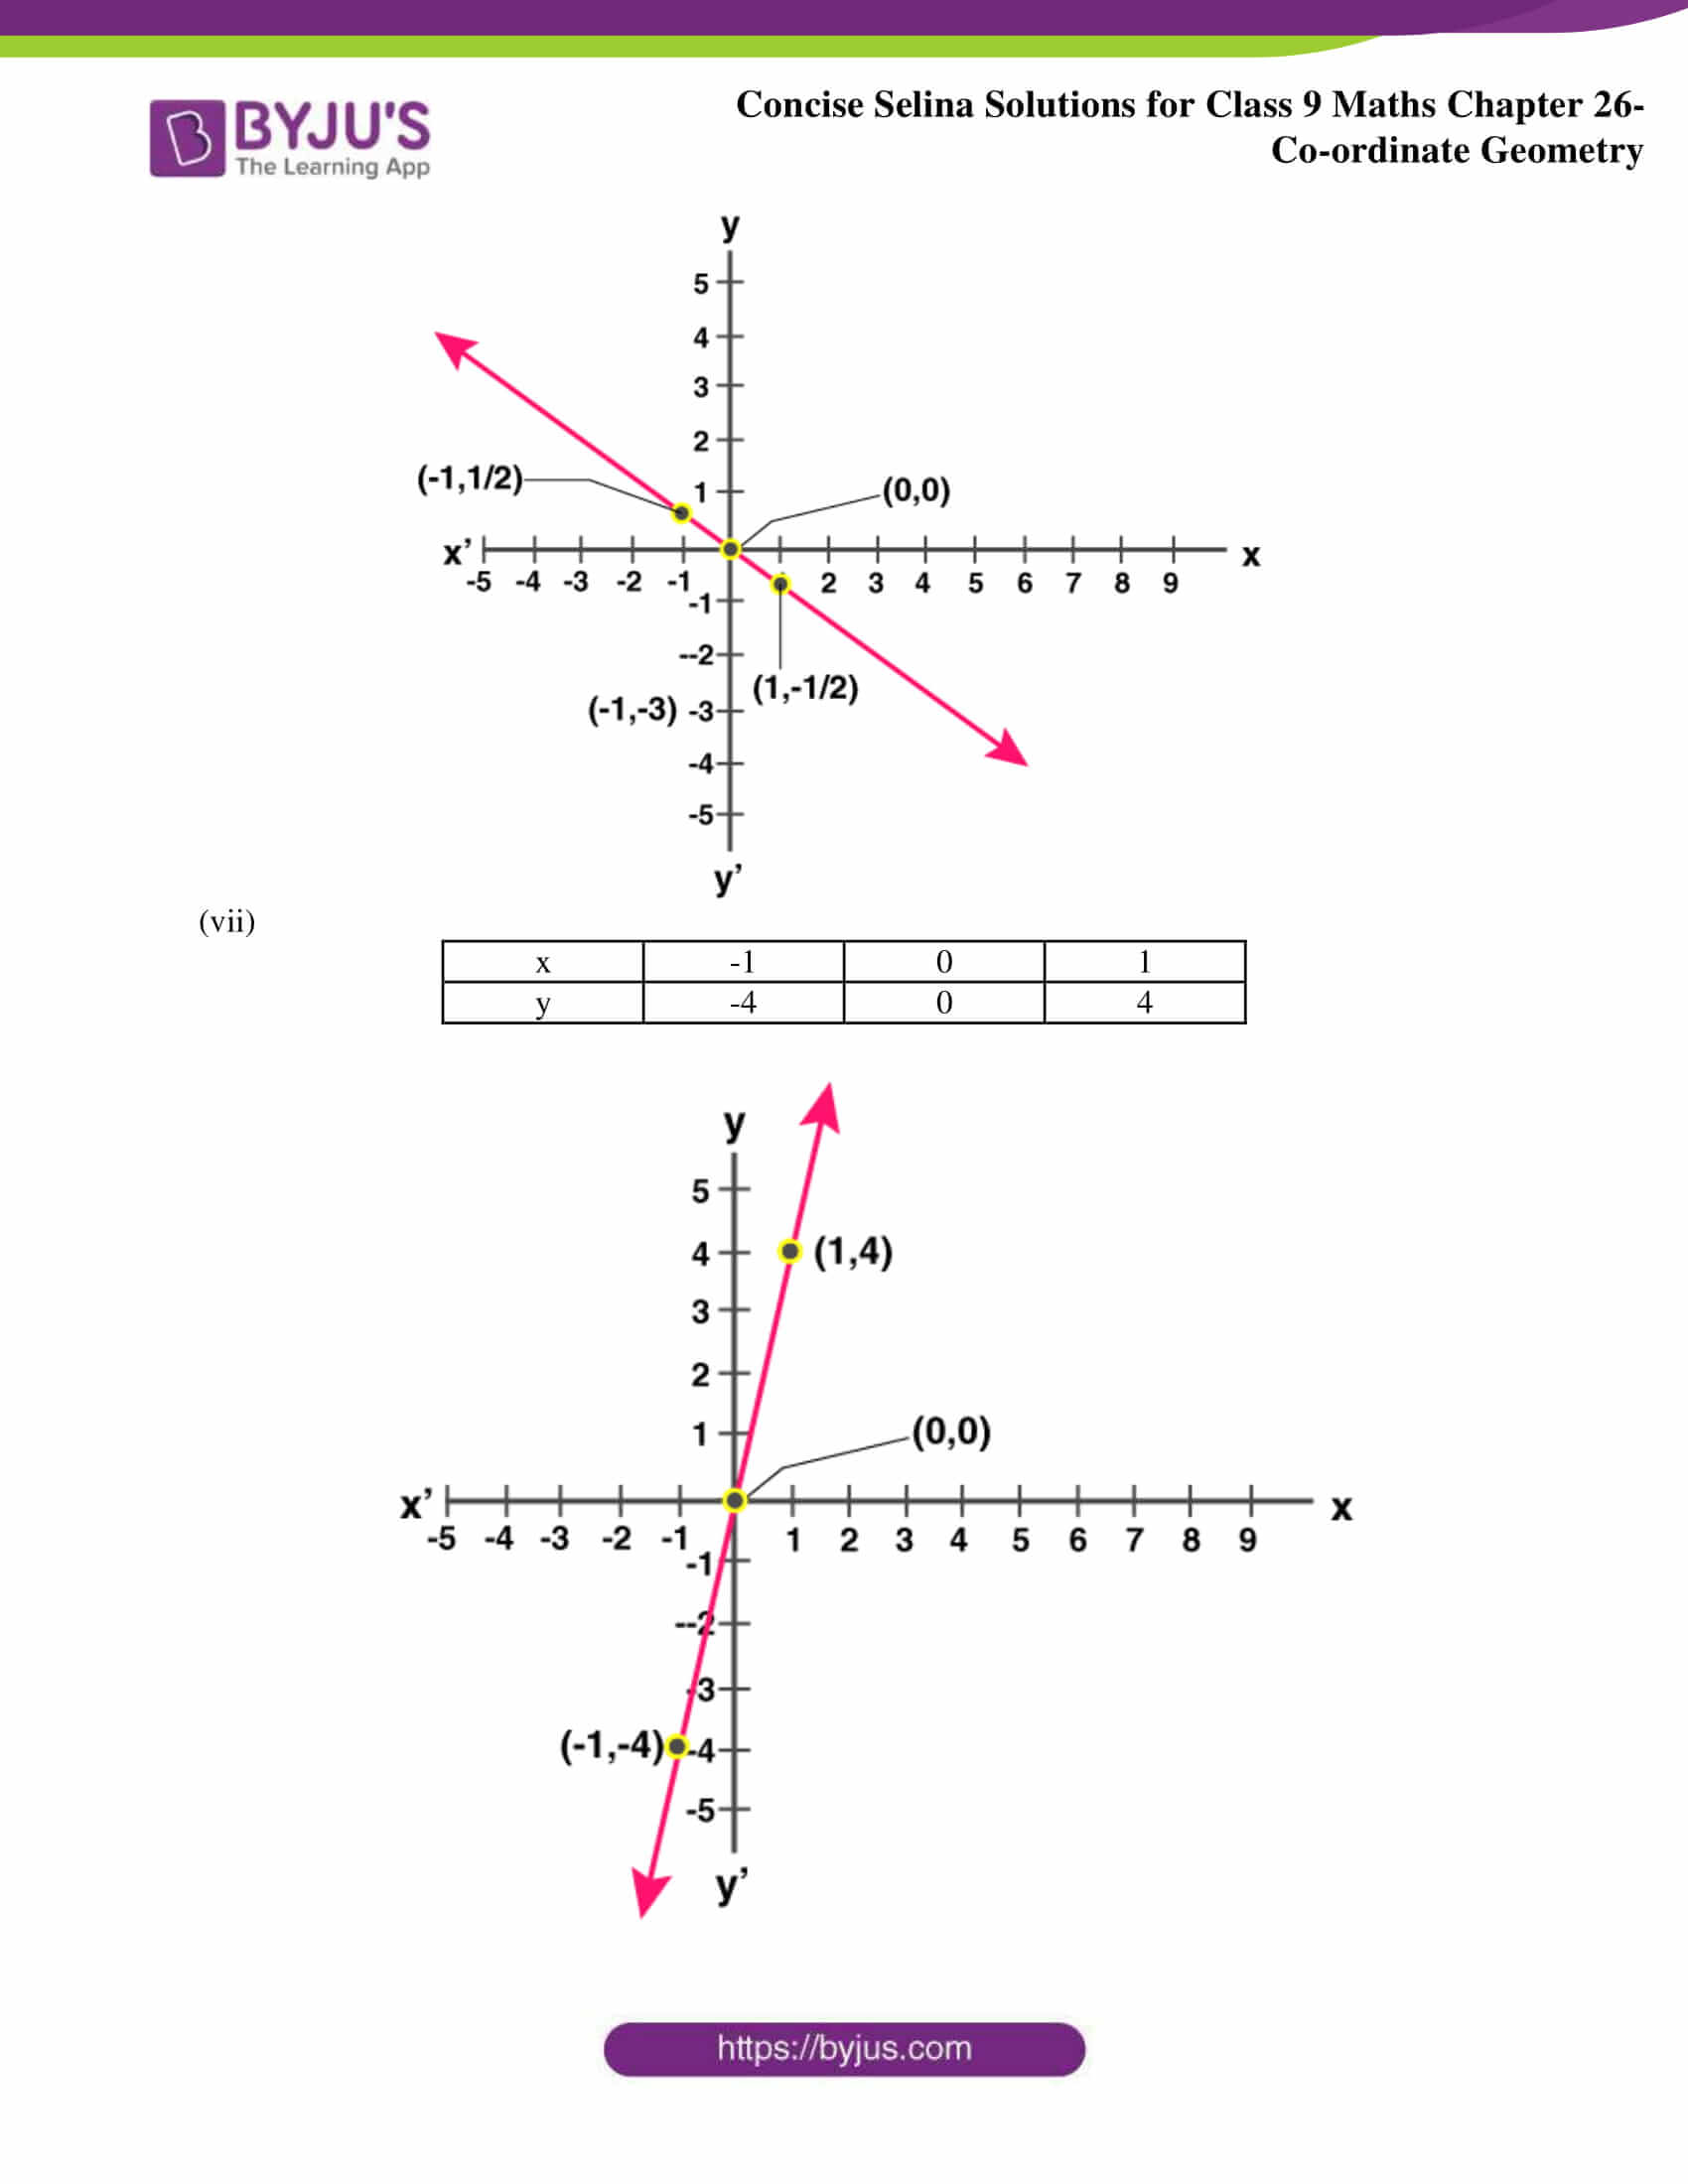 Selina Solutions for Class 9 Maths Chapter 26 part 25